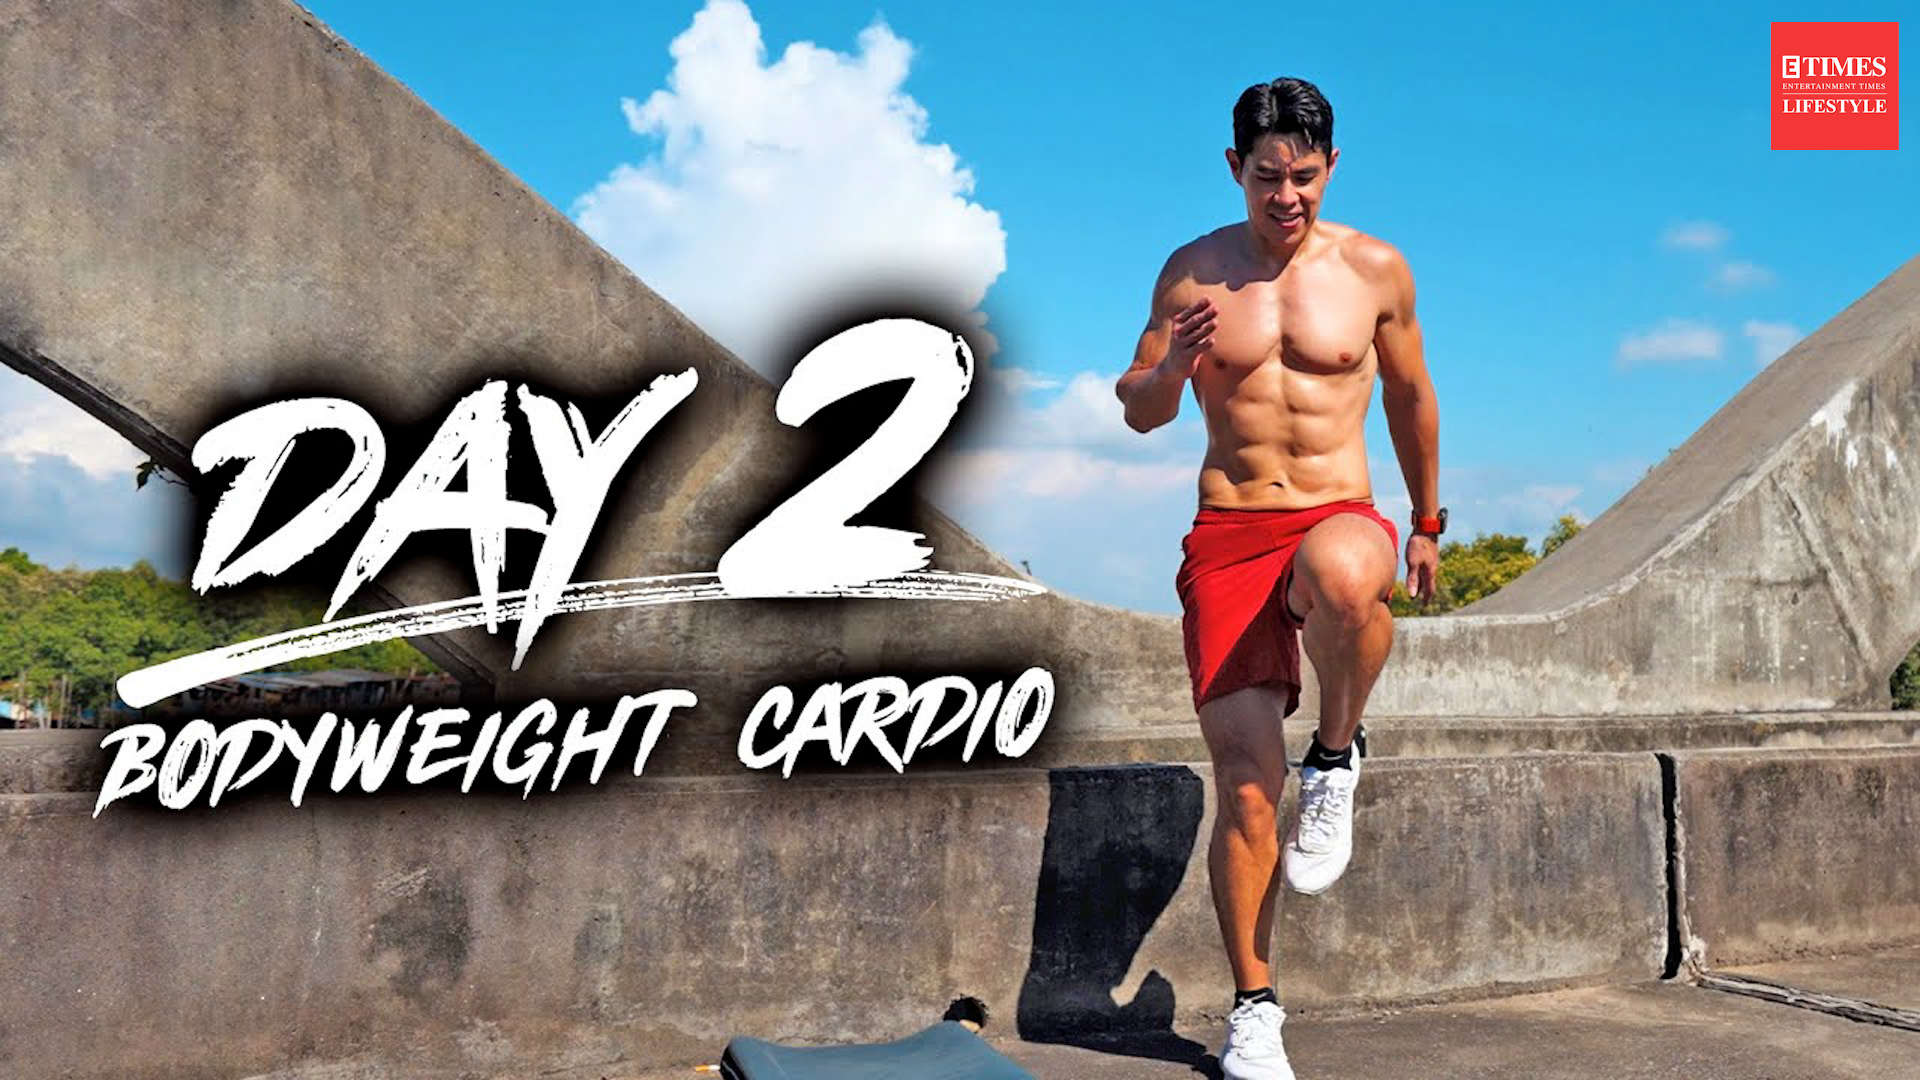 day-2-bodyweight-cardio